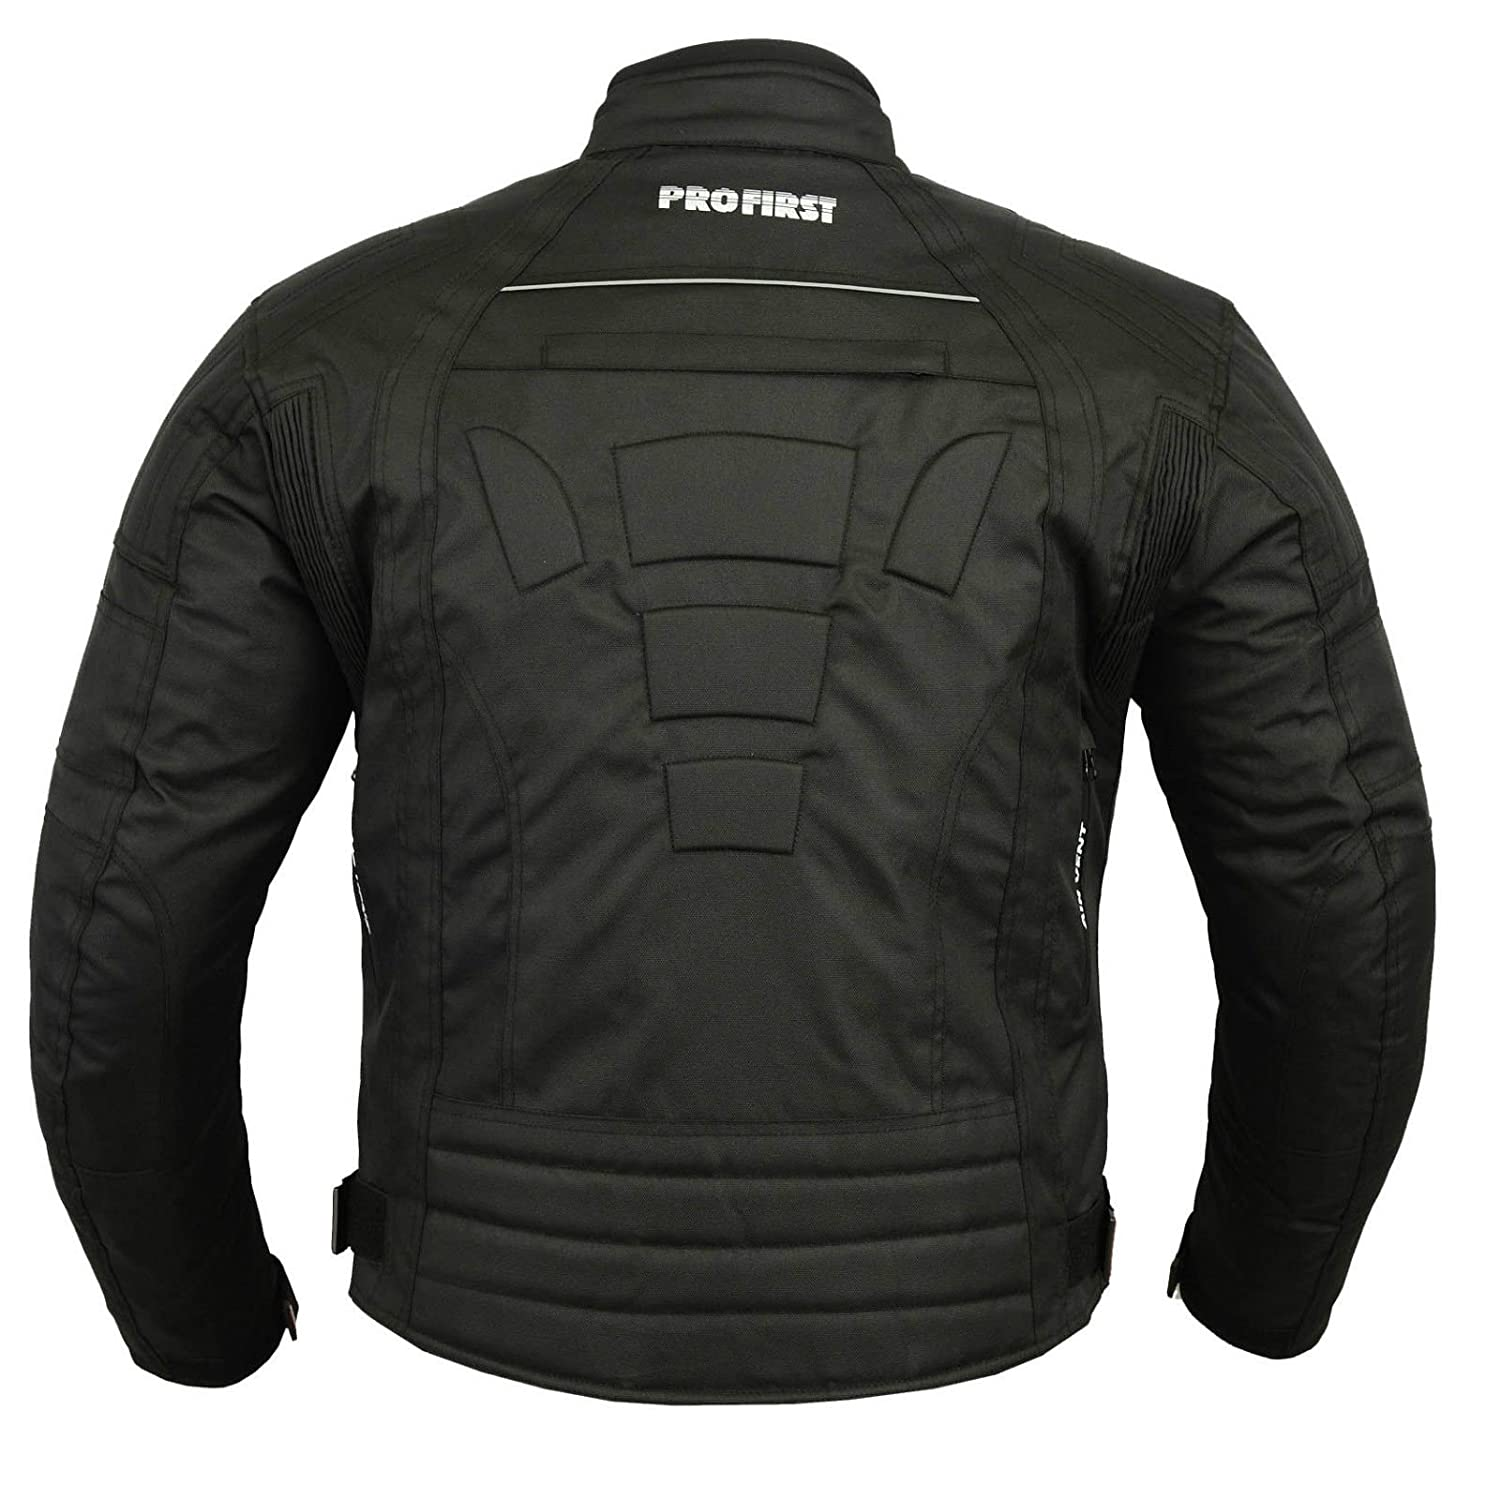 JKT-007 Waterproof Motorbike Motorcycle Jacket in Cordura Fabric and CE Approved Armour 6 Packs Design Most Popular Black /& Full Black, 3X-Large